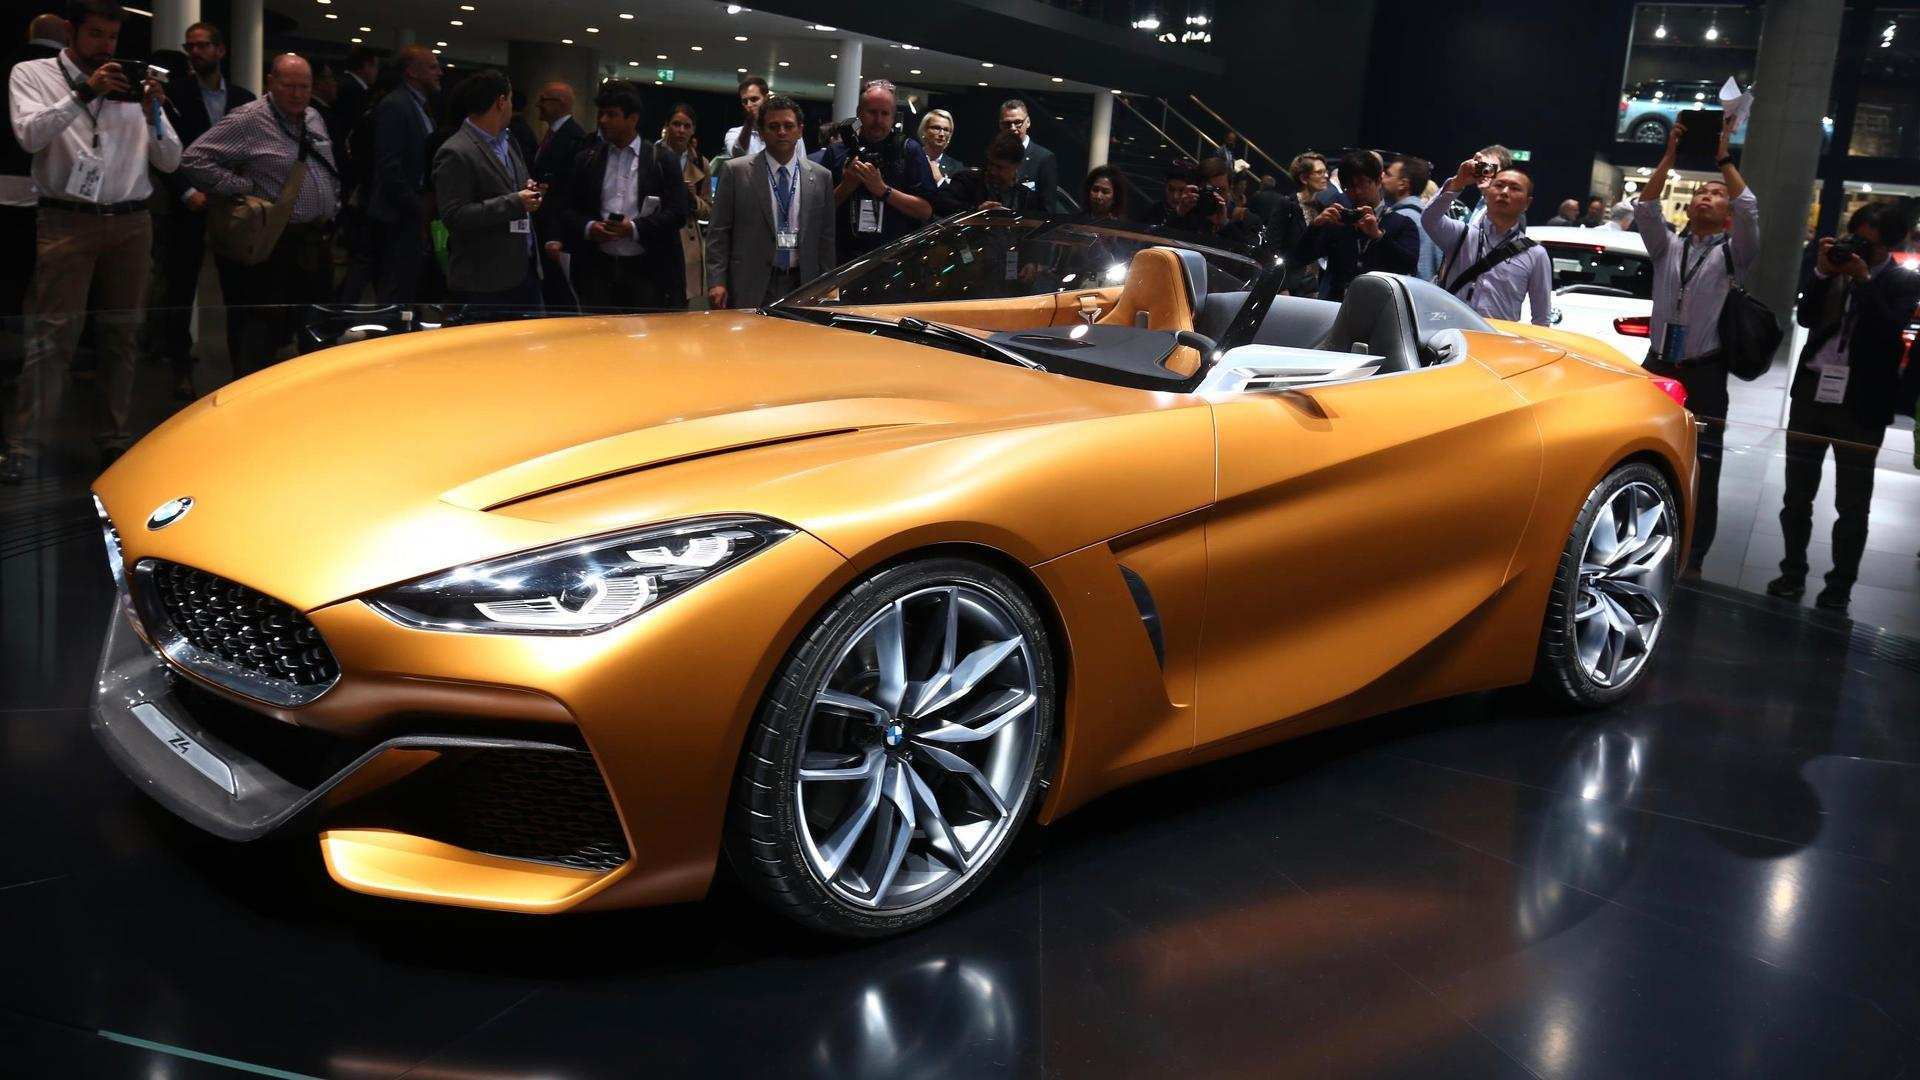 88 Concept of 2019 Bmw Z4 Engine Engine by 2019 Bmw Z4 Engine